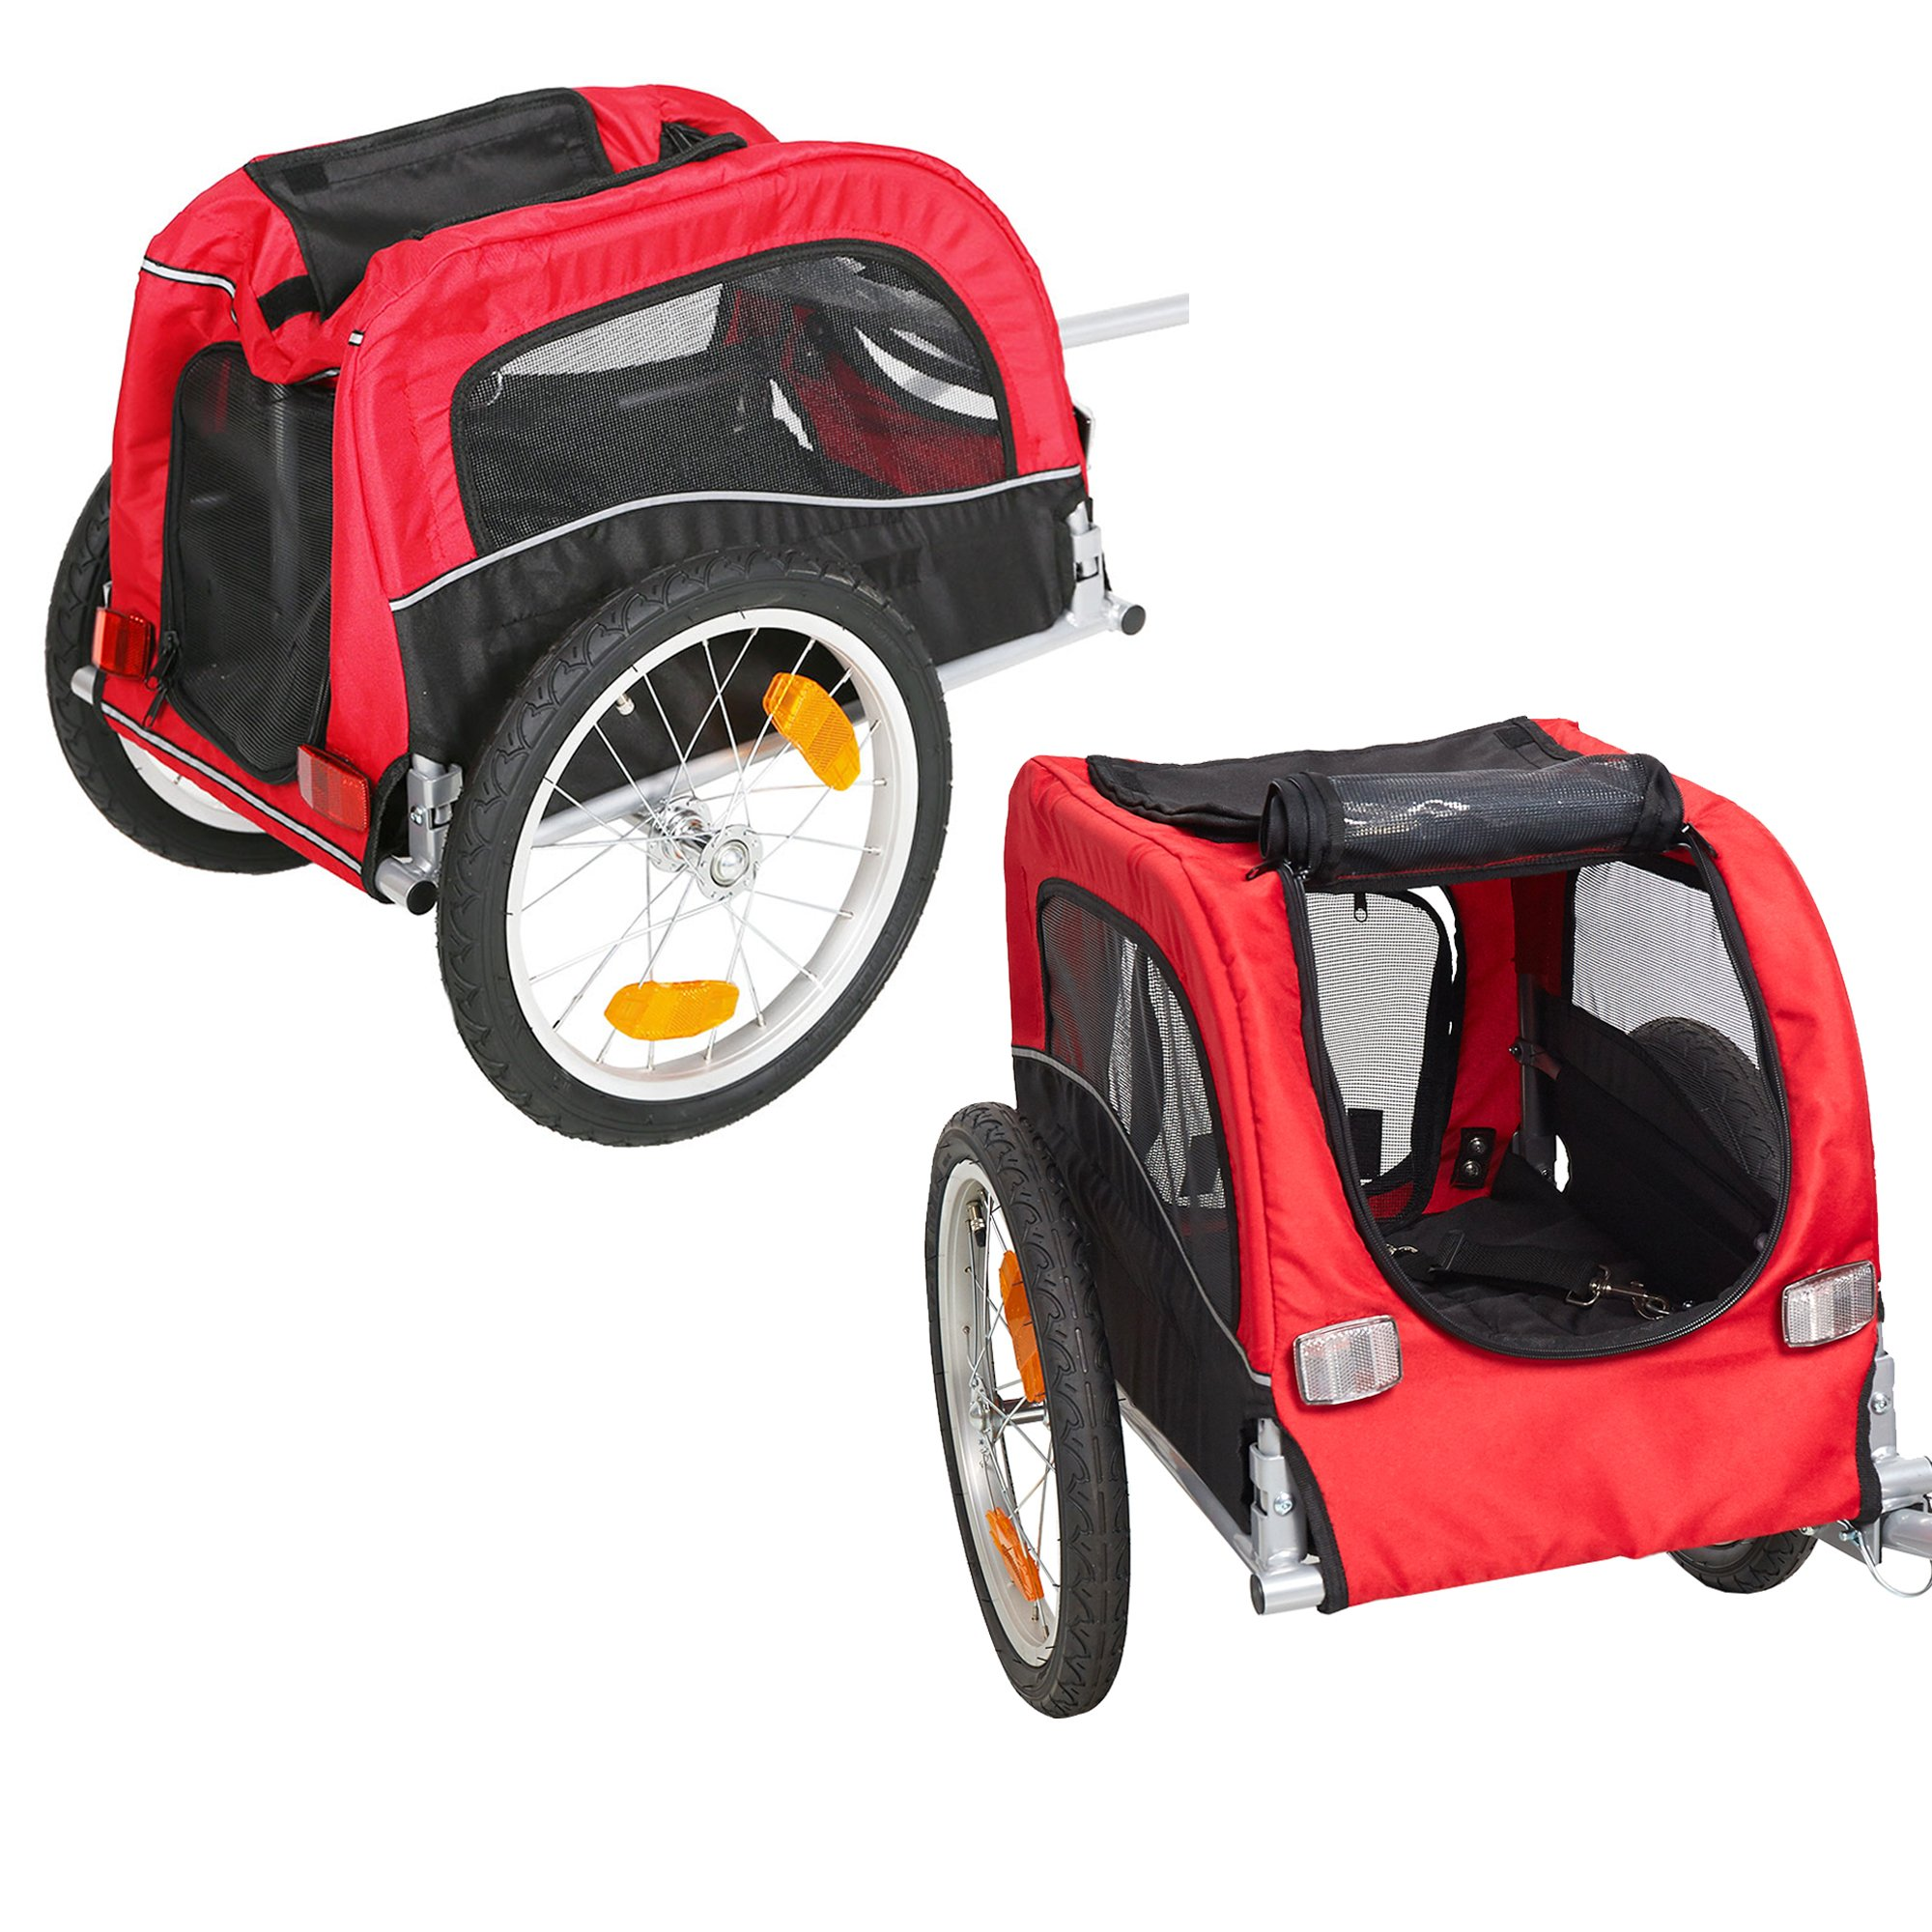 Lucky Tree Pet Dog Bike Trailer Bicycle Trailer Carrier Cycling Jogging w/Suspension by Lucky Tree (Image #4)